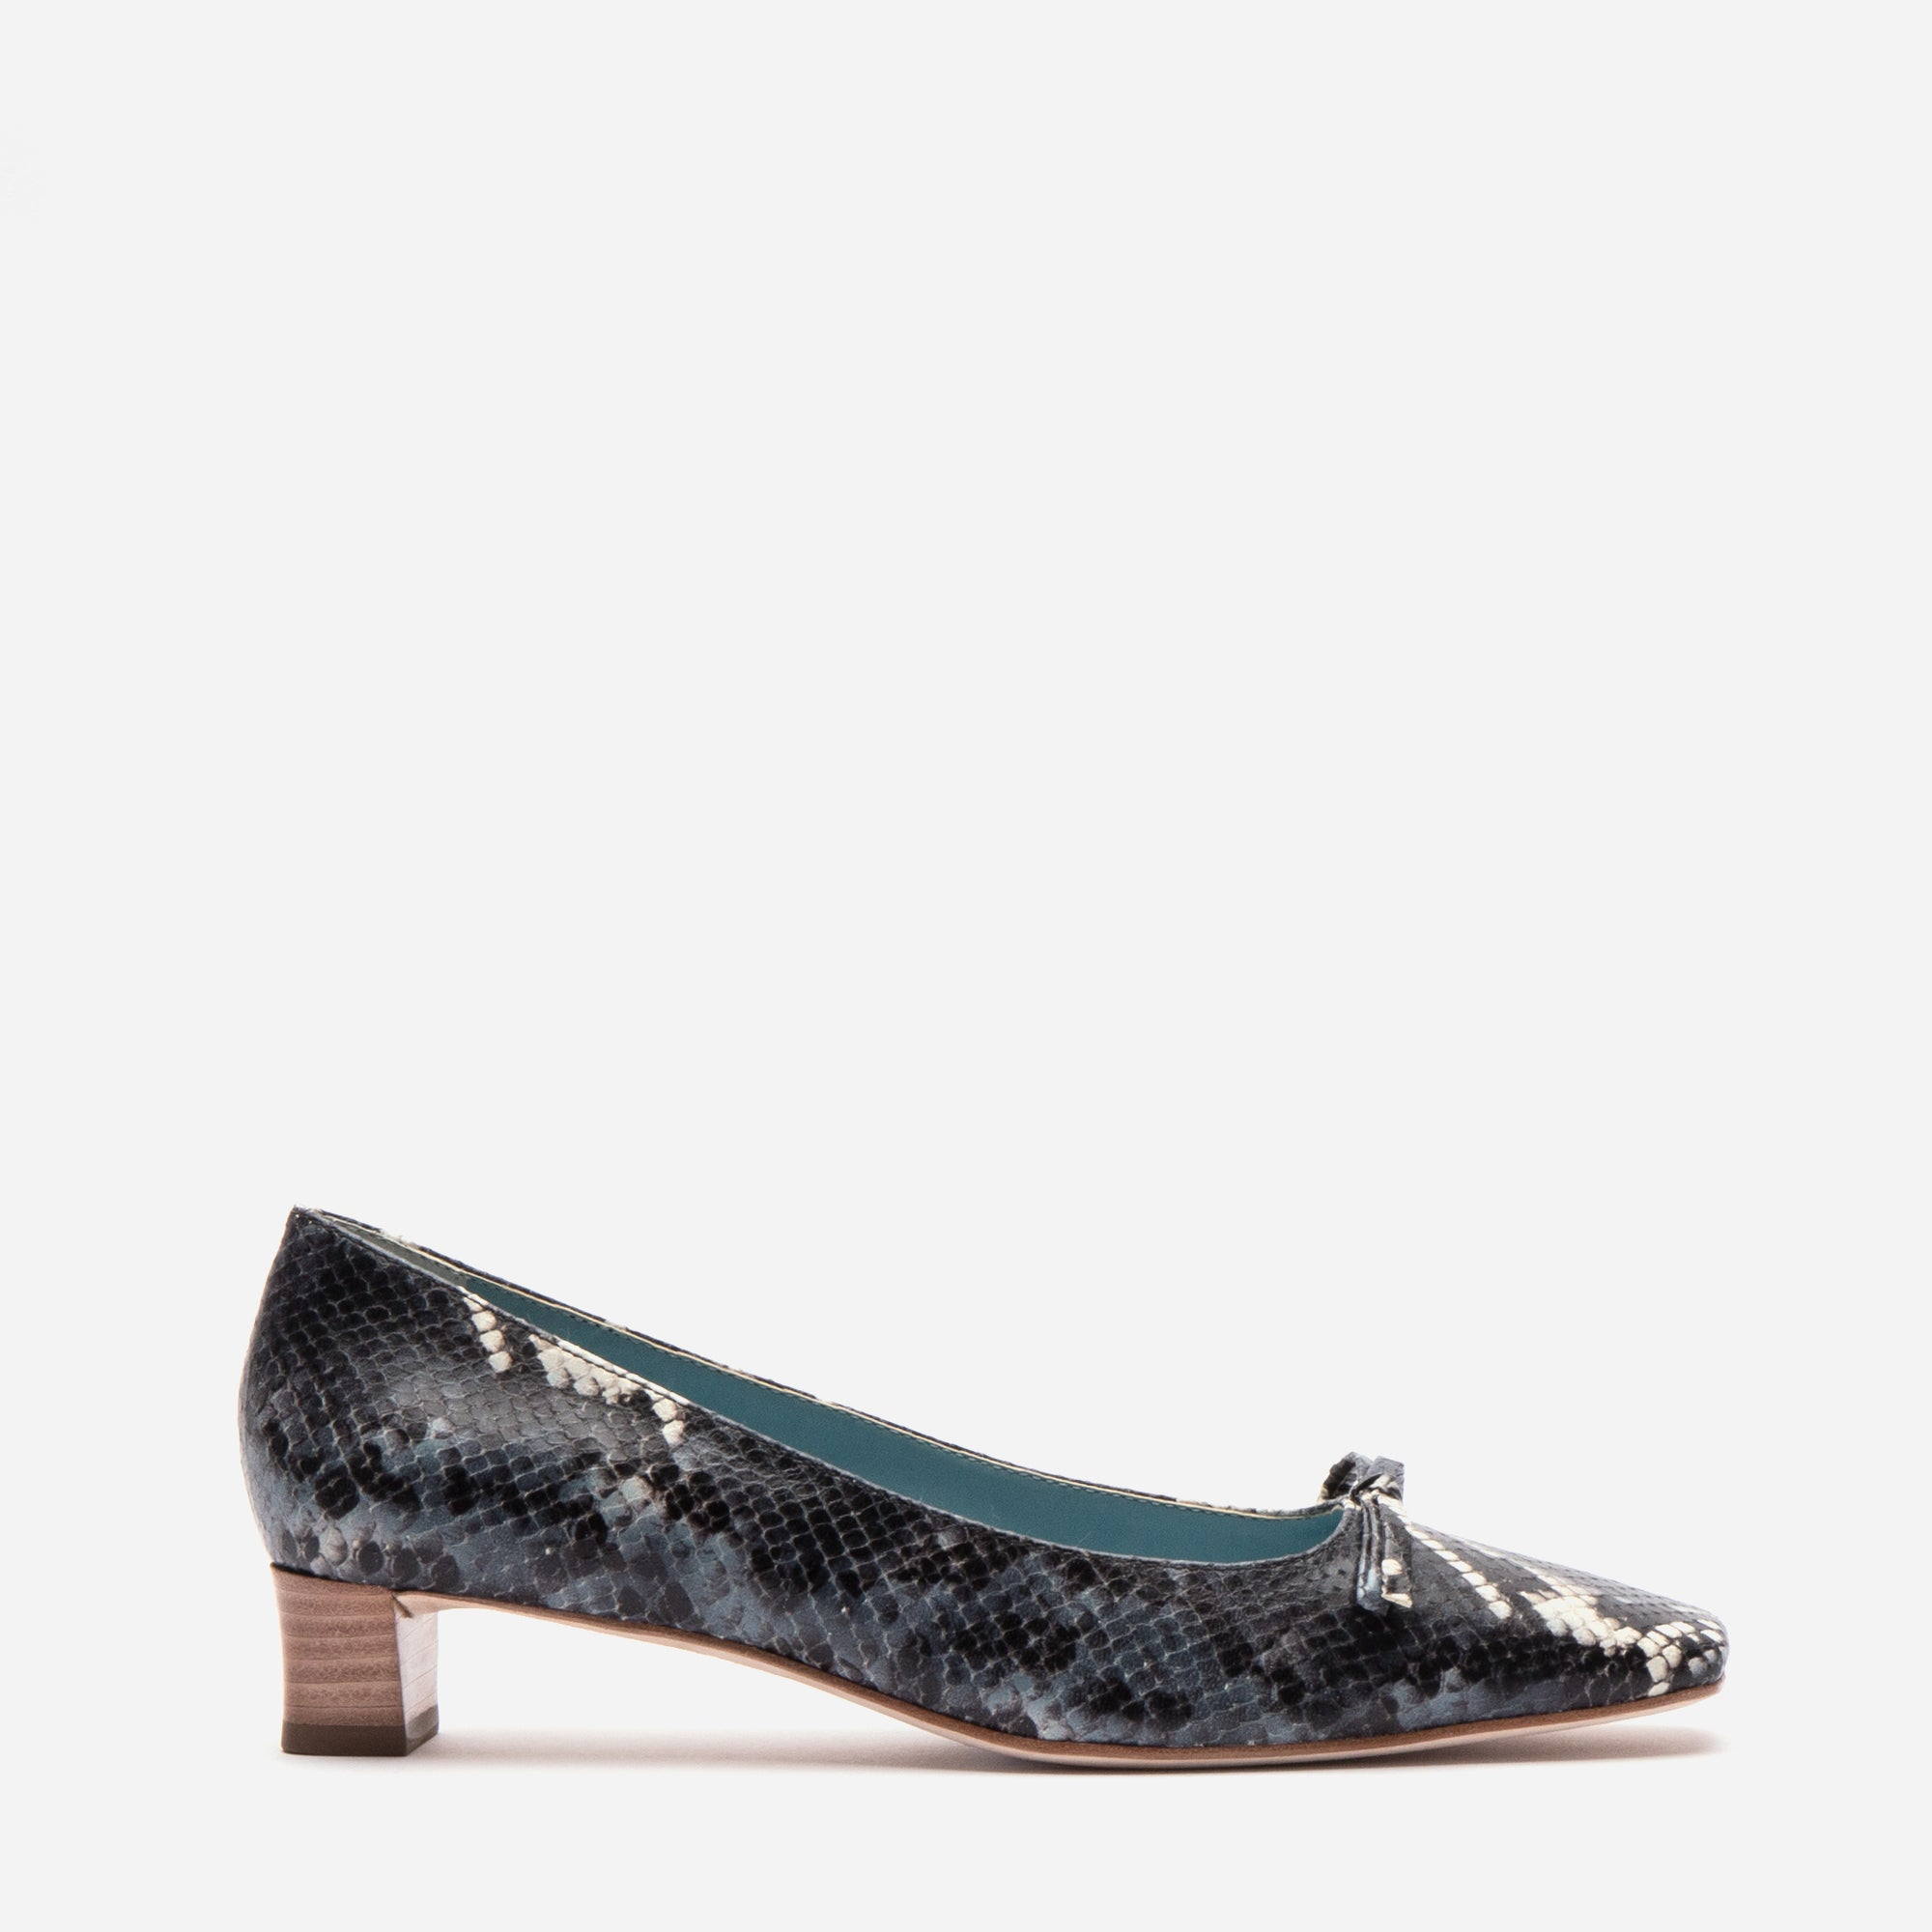 Mary Mini Block Heel Printed Snake Navy